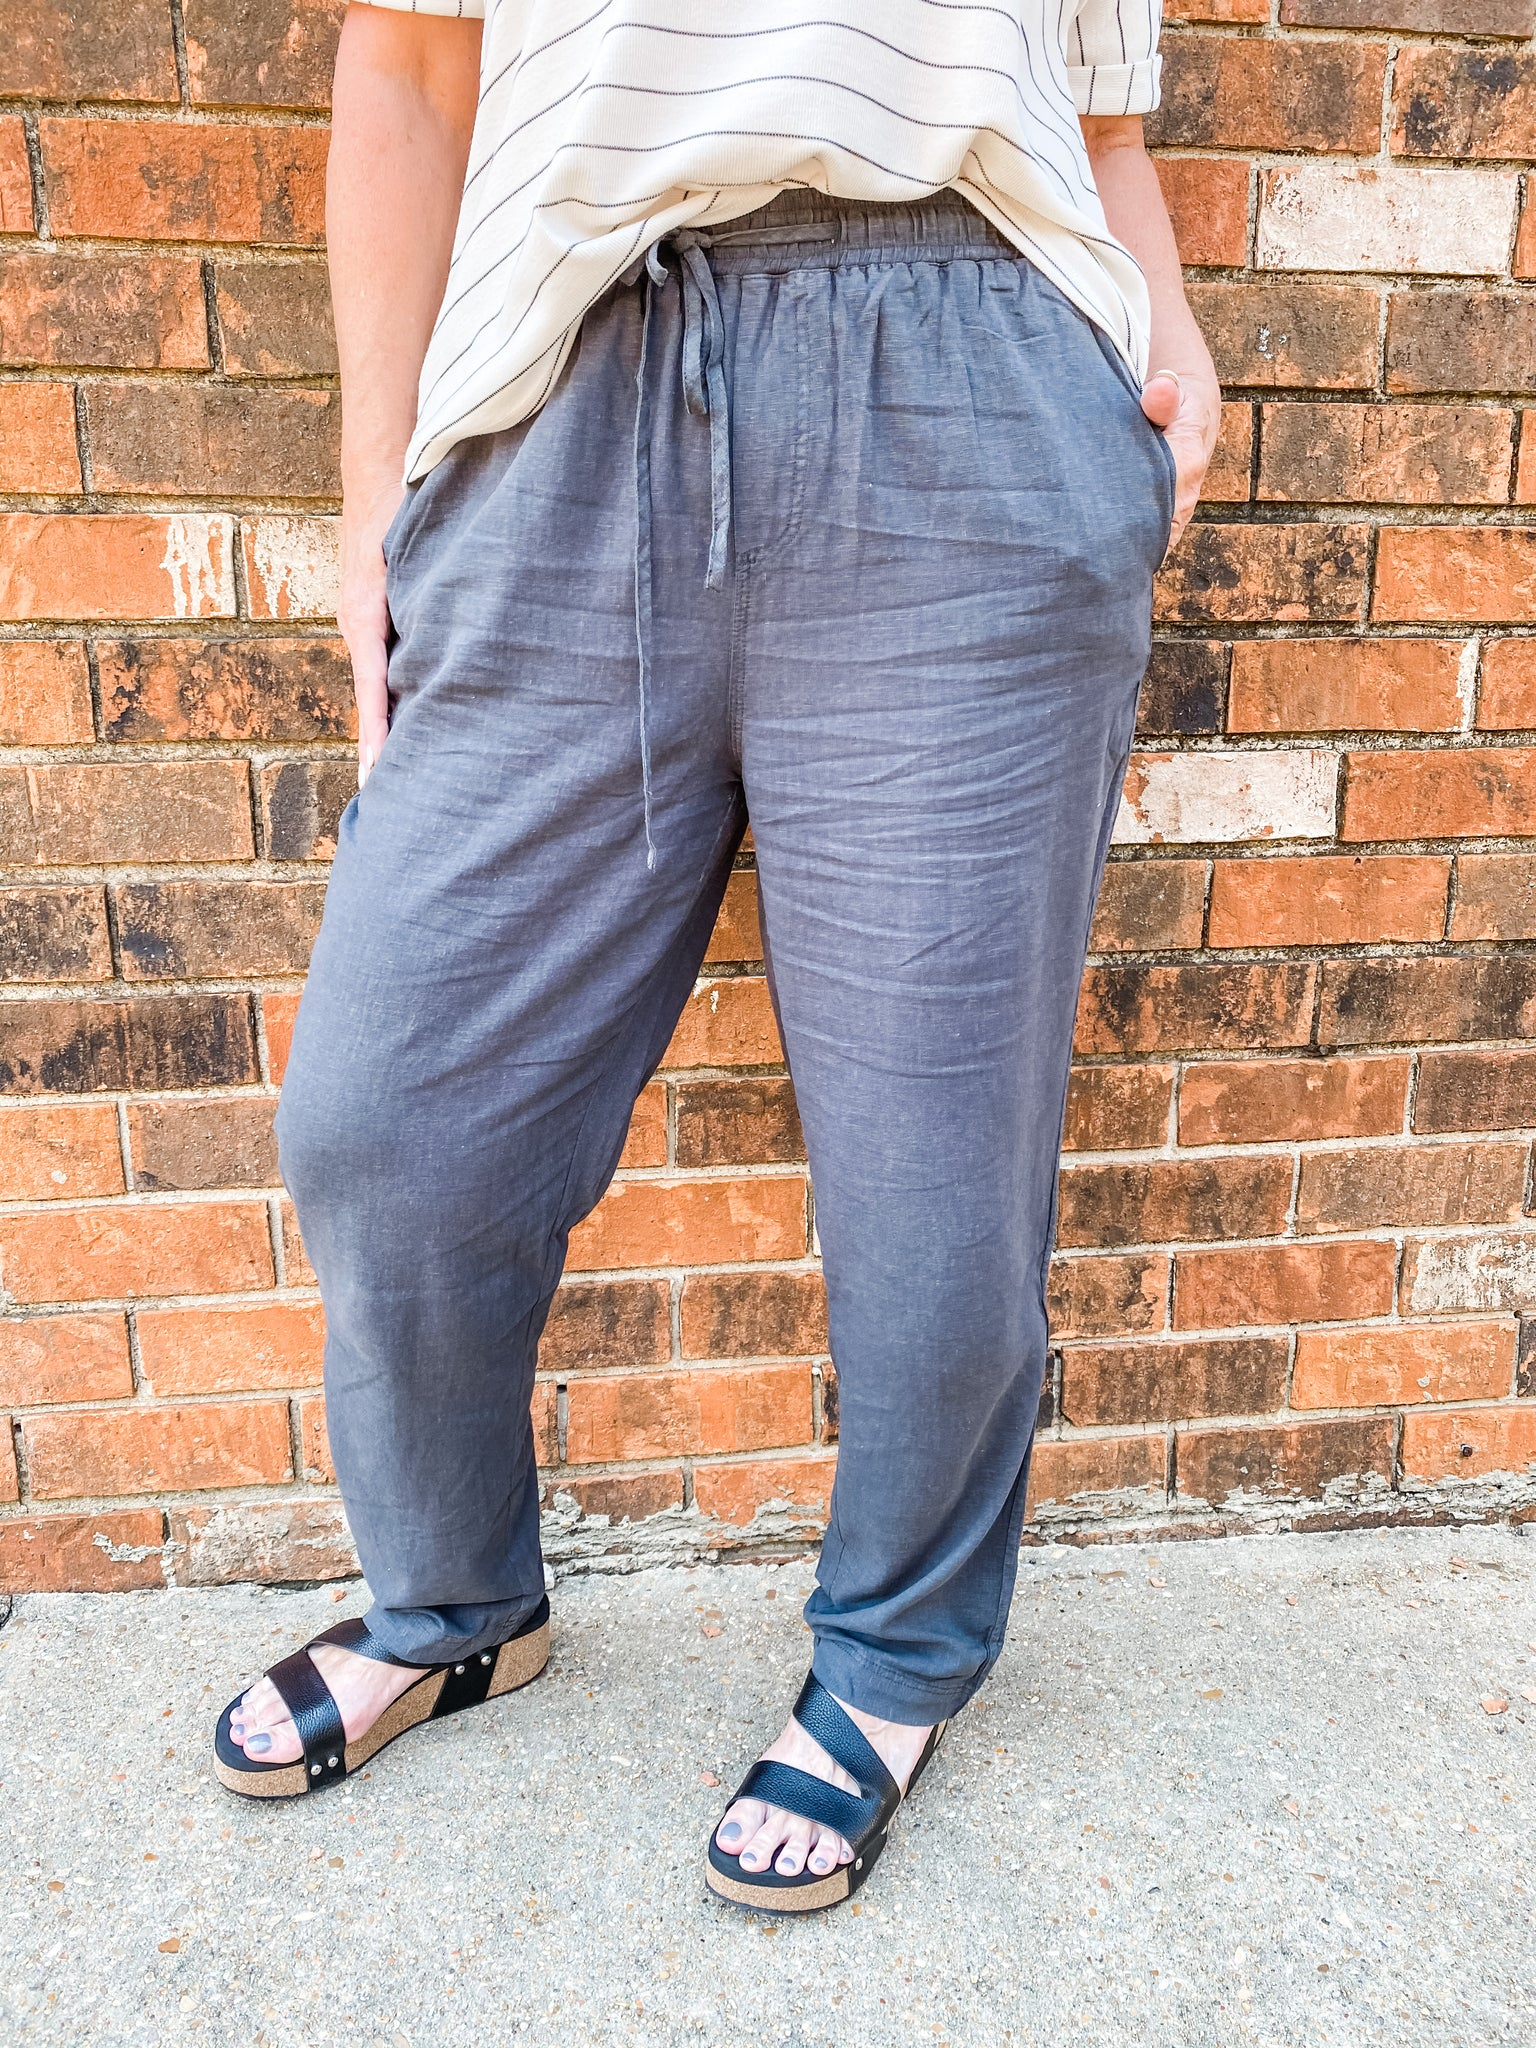 Brooklyn Charcoal Pants